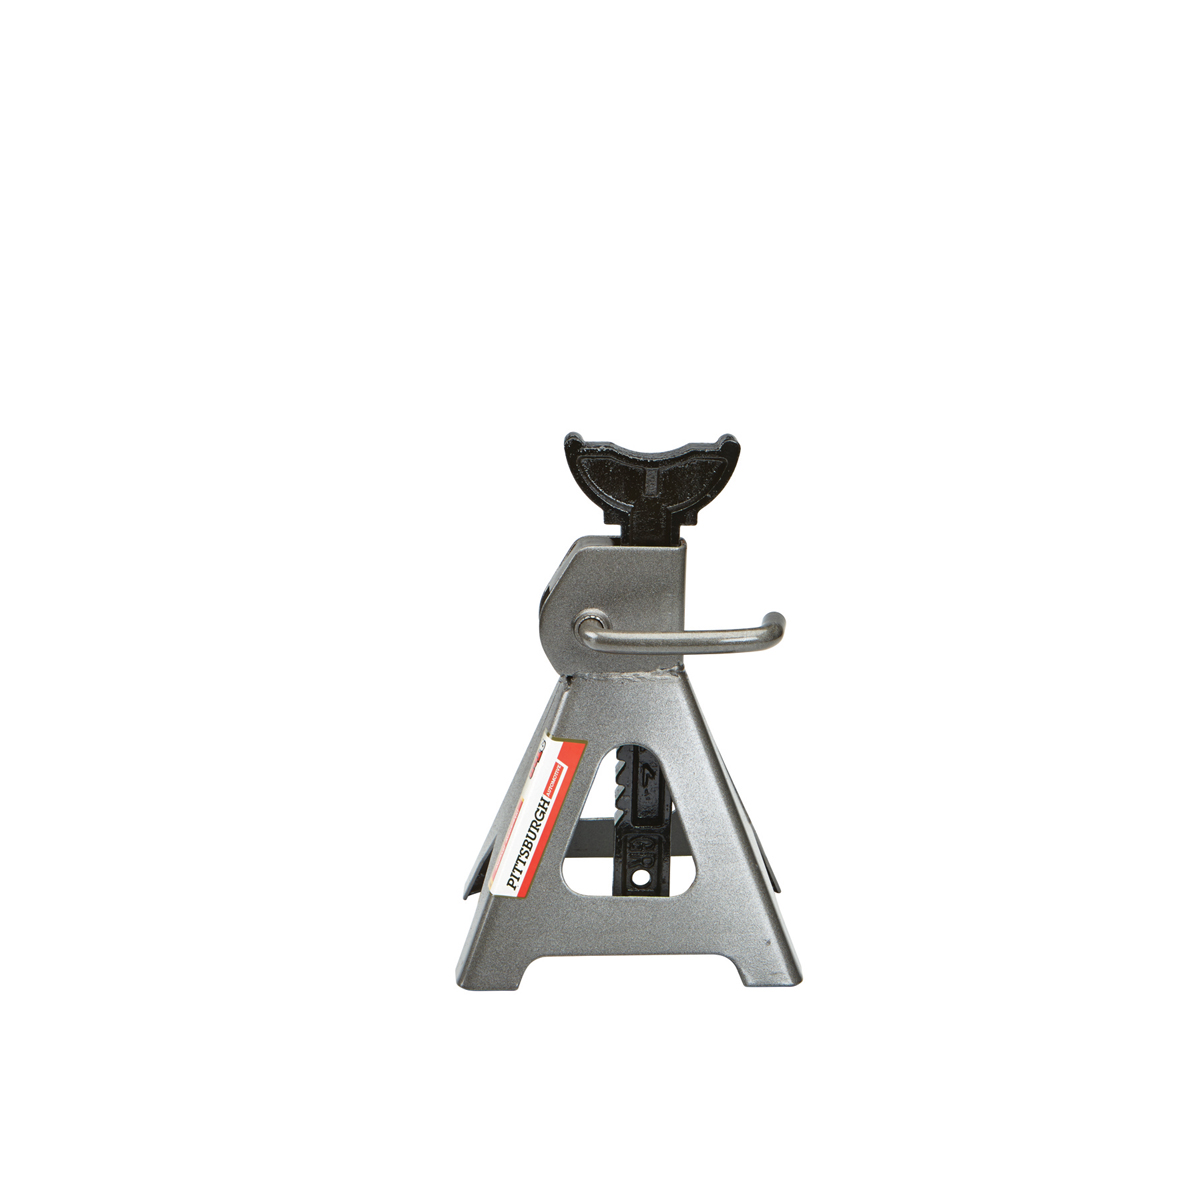 3 Ton Jack Stands Heavy Duty Jack Stands For Cars And Trucks